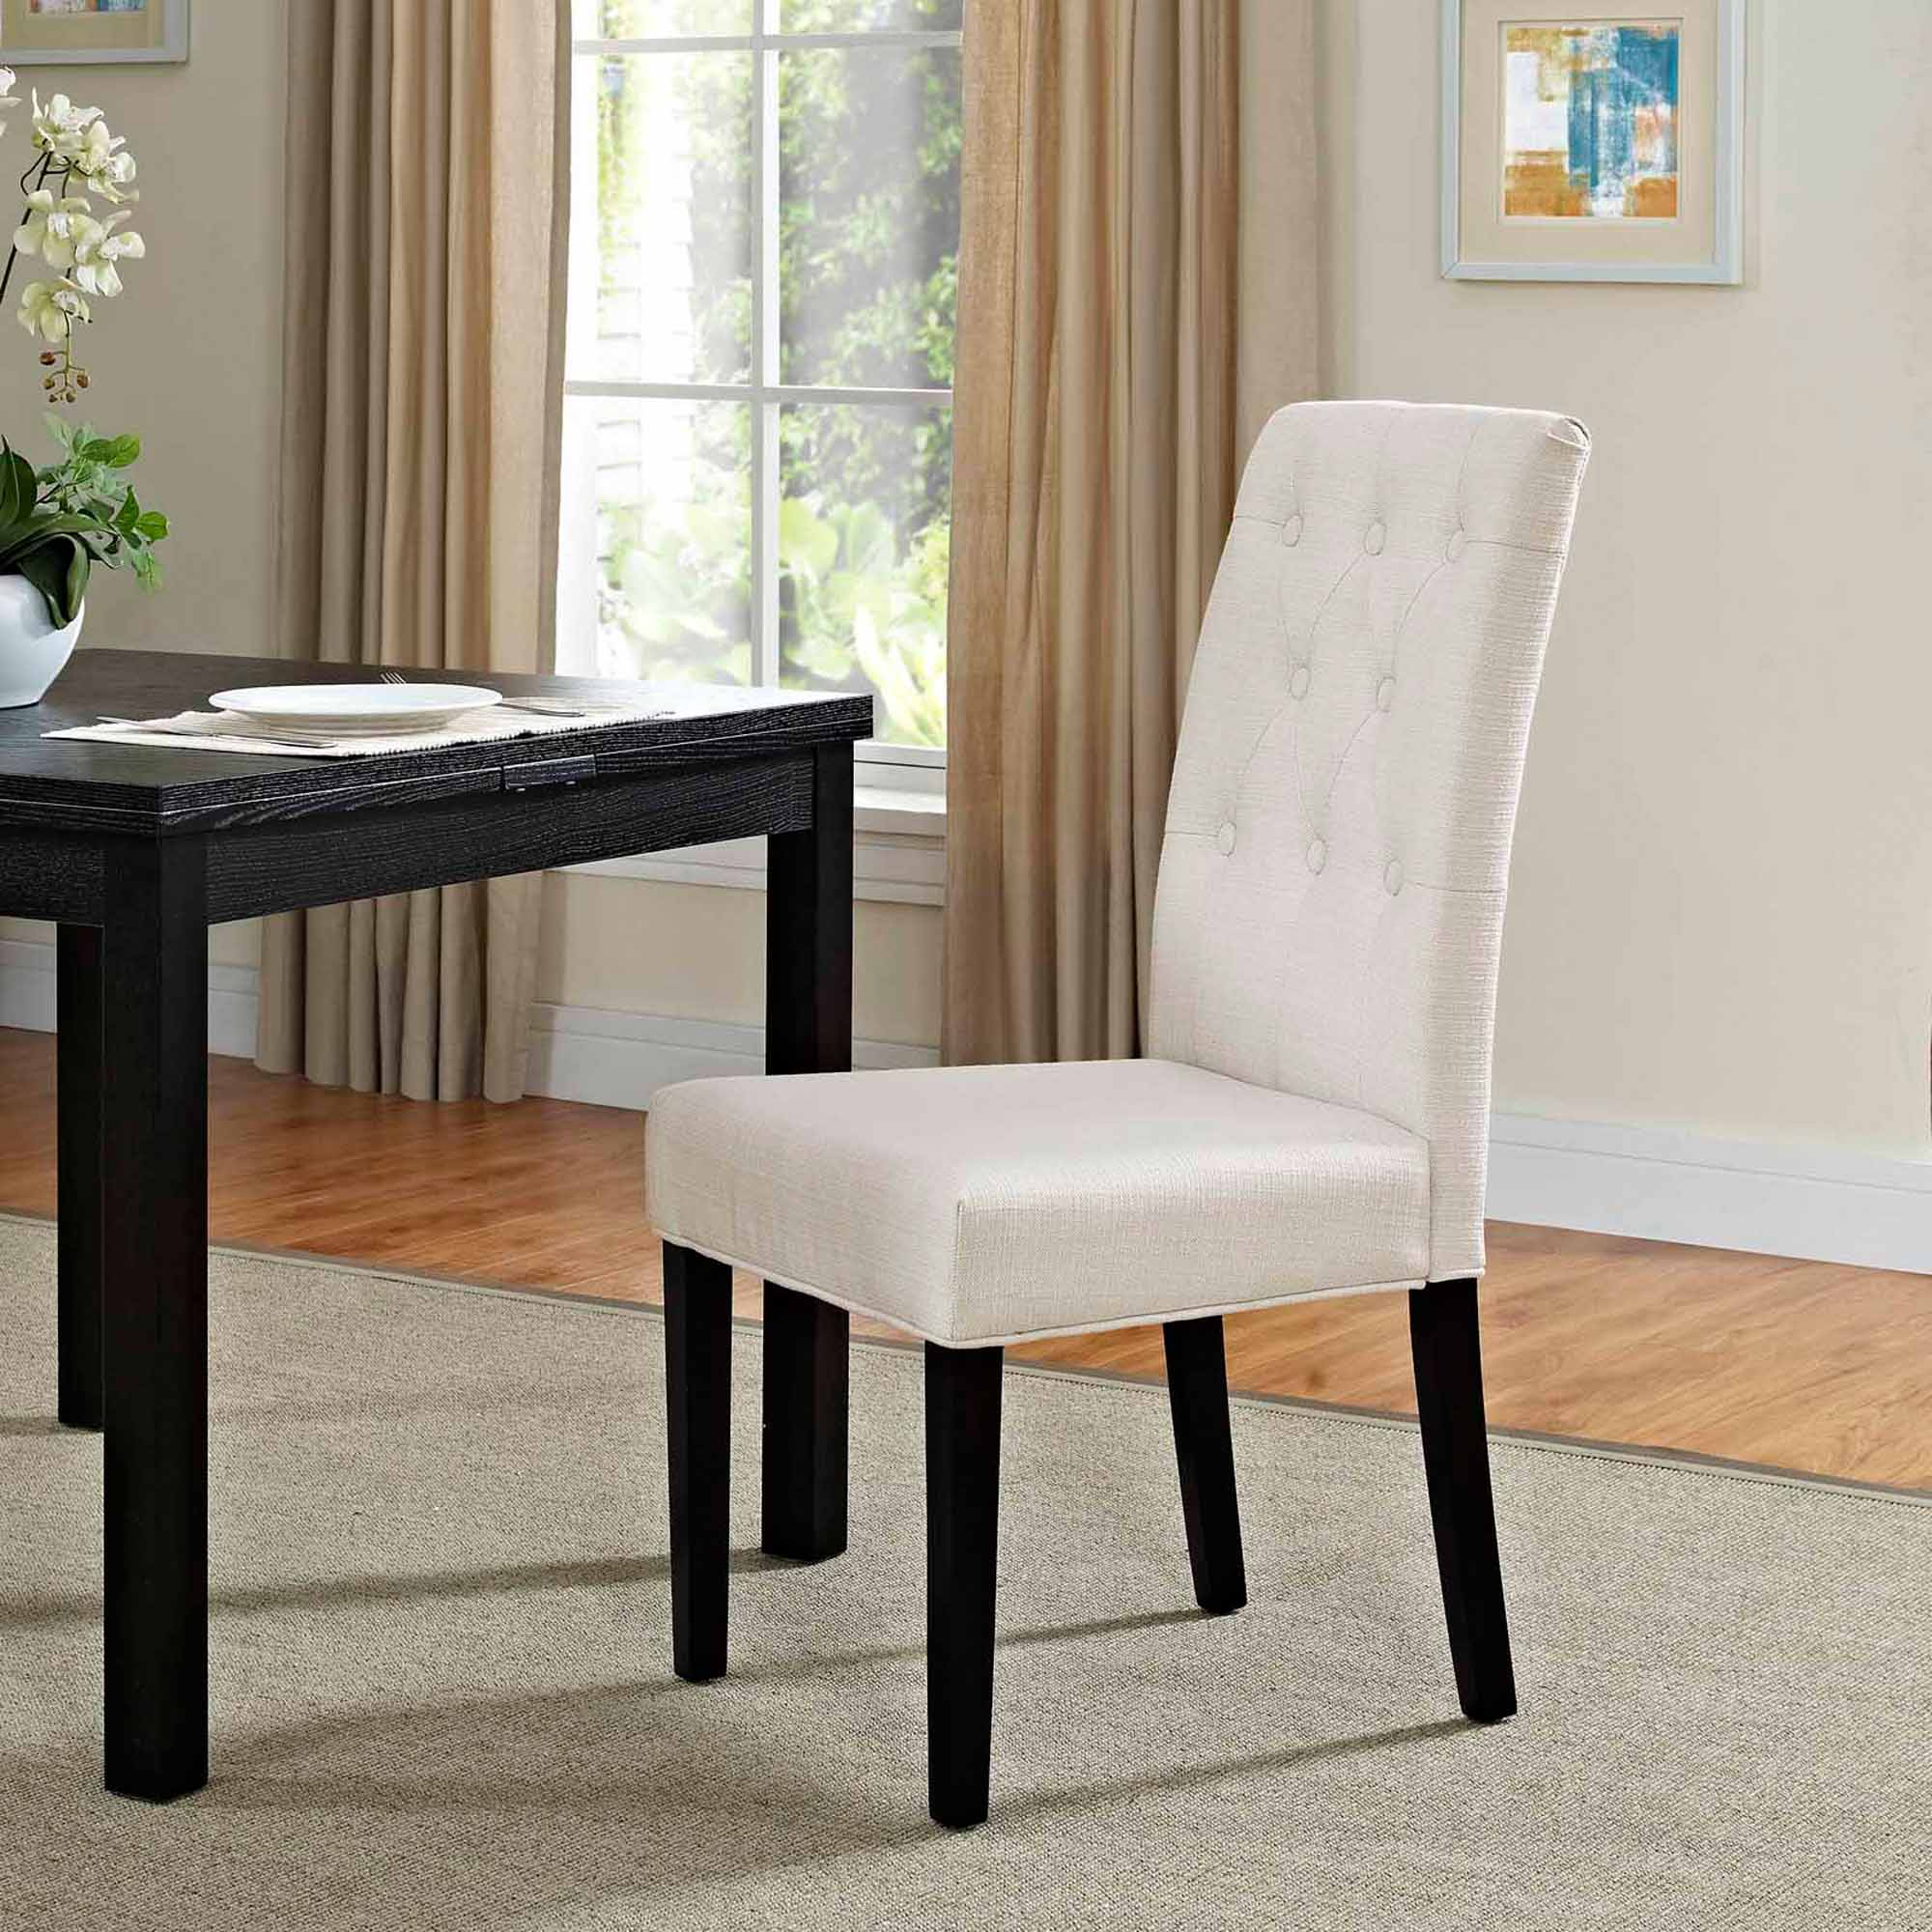 Modway Confer Upholstered Dining Side Chair, Multiple Colors